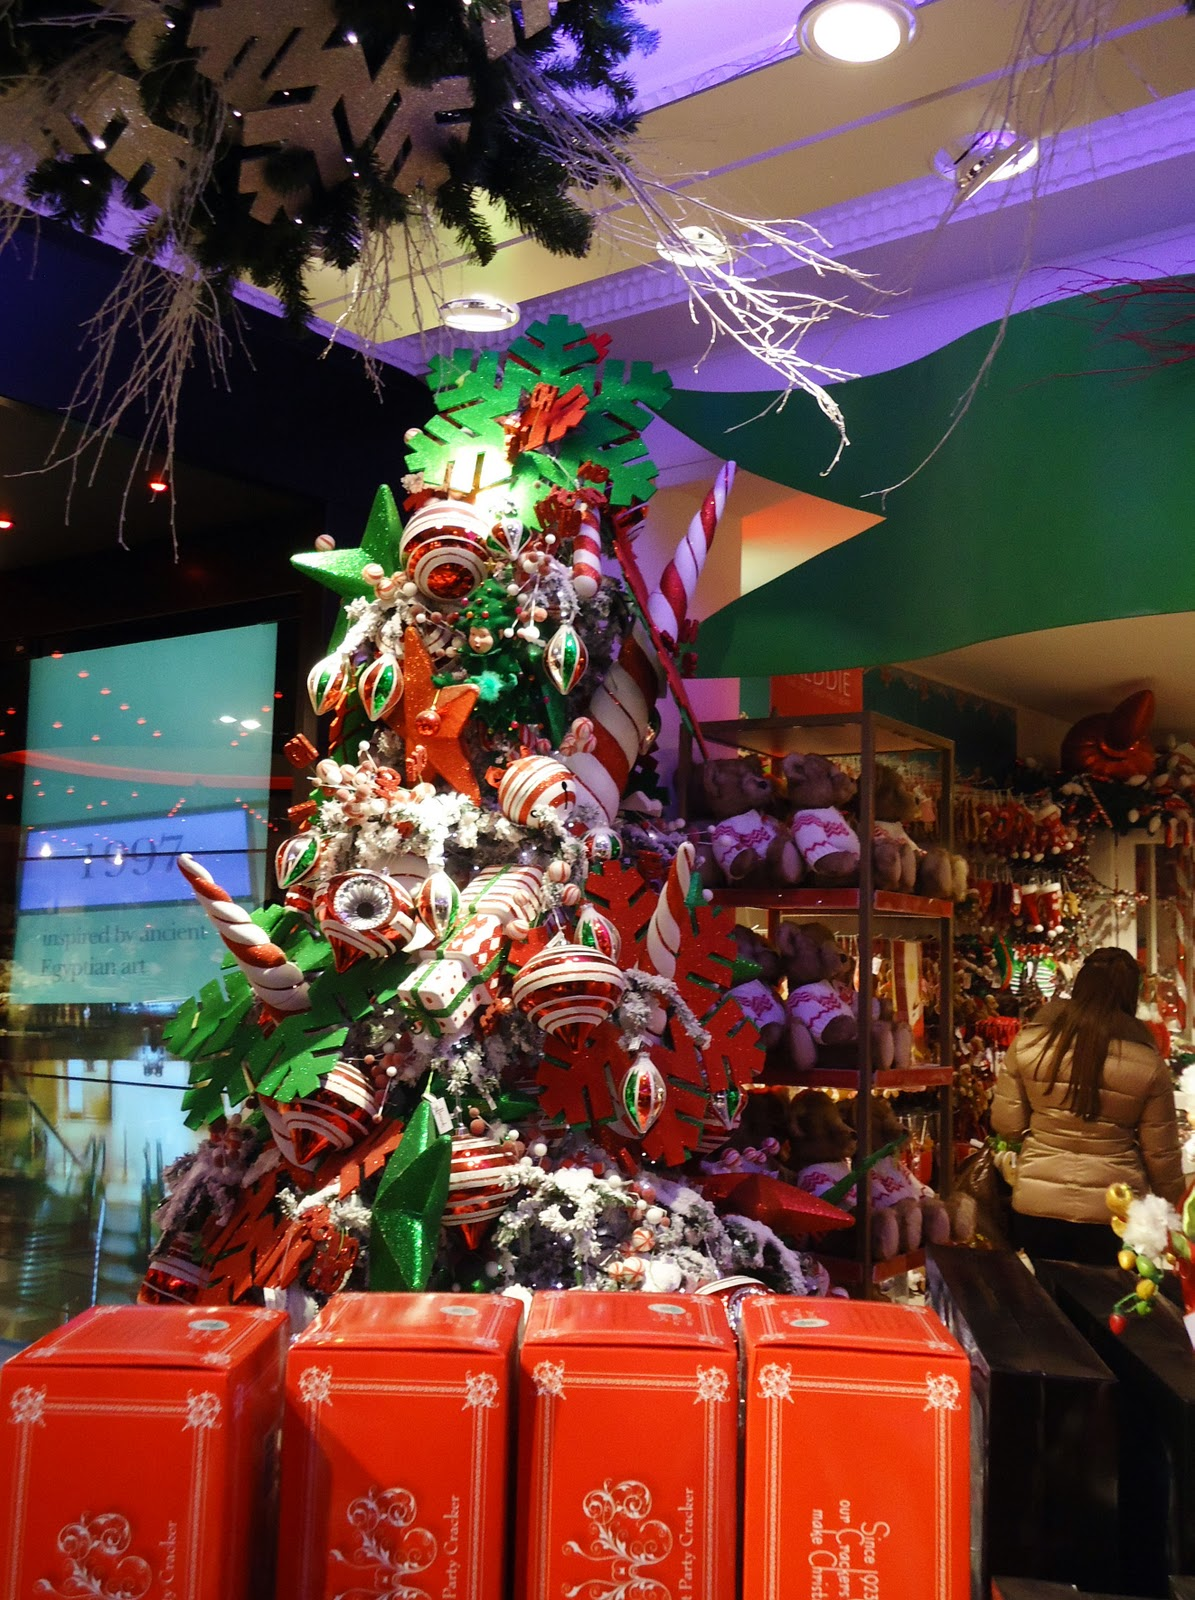 #BE2A0D LONjawn: Philly Expat In London: Harrods Crystal Christmas  6429 décoration noel harrods 1195x1600 px @ aertt.com